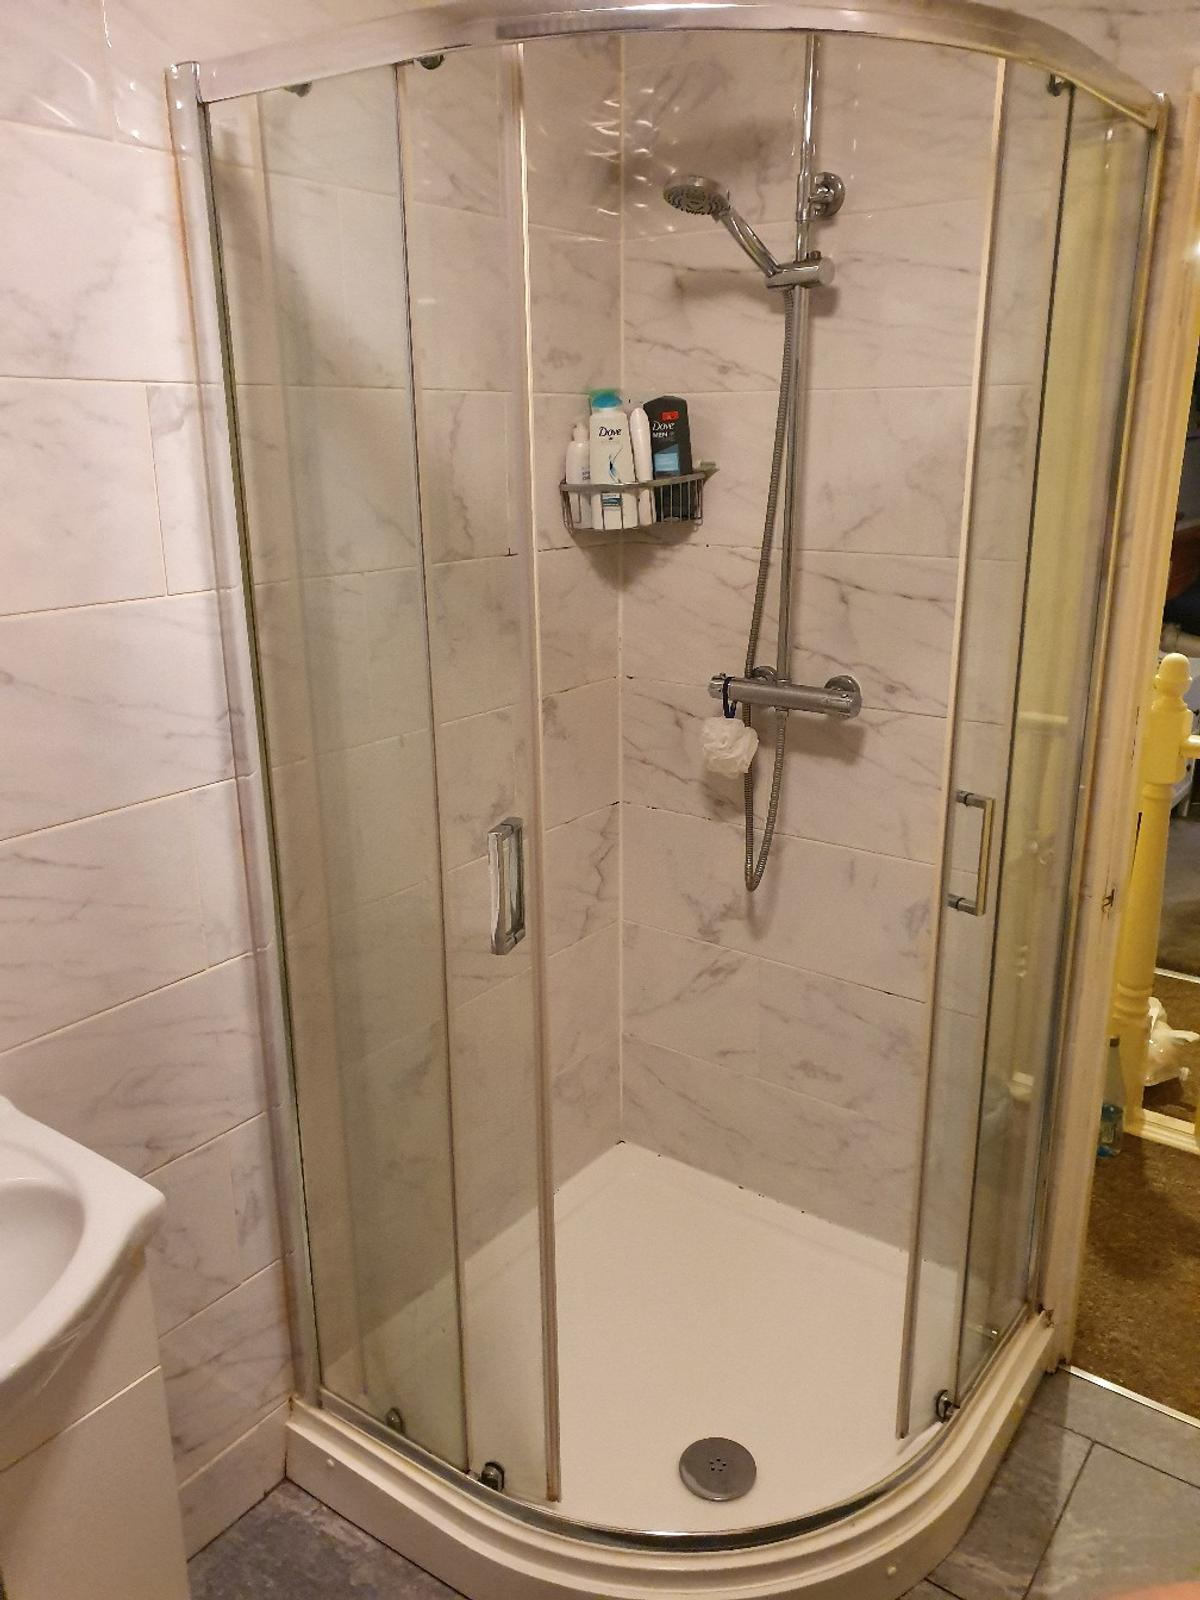 shower not included 3ft x 3ft tray glass sliding doors with chrome fittings selling as ive had a bath put into my bathroom open to offers collection only other bathroom items also for sale